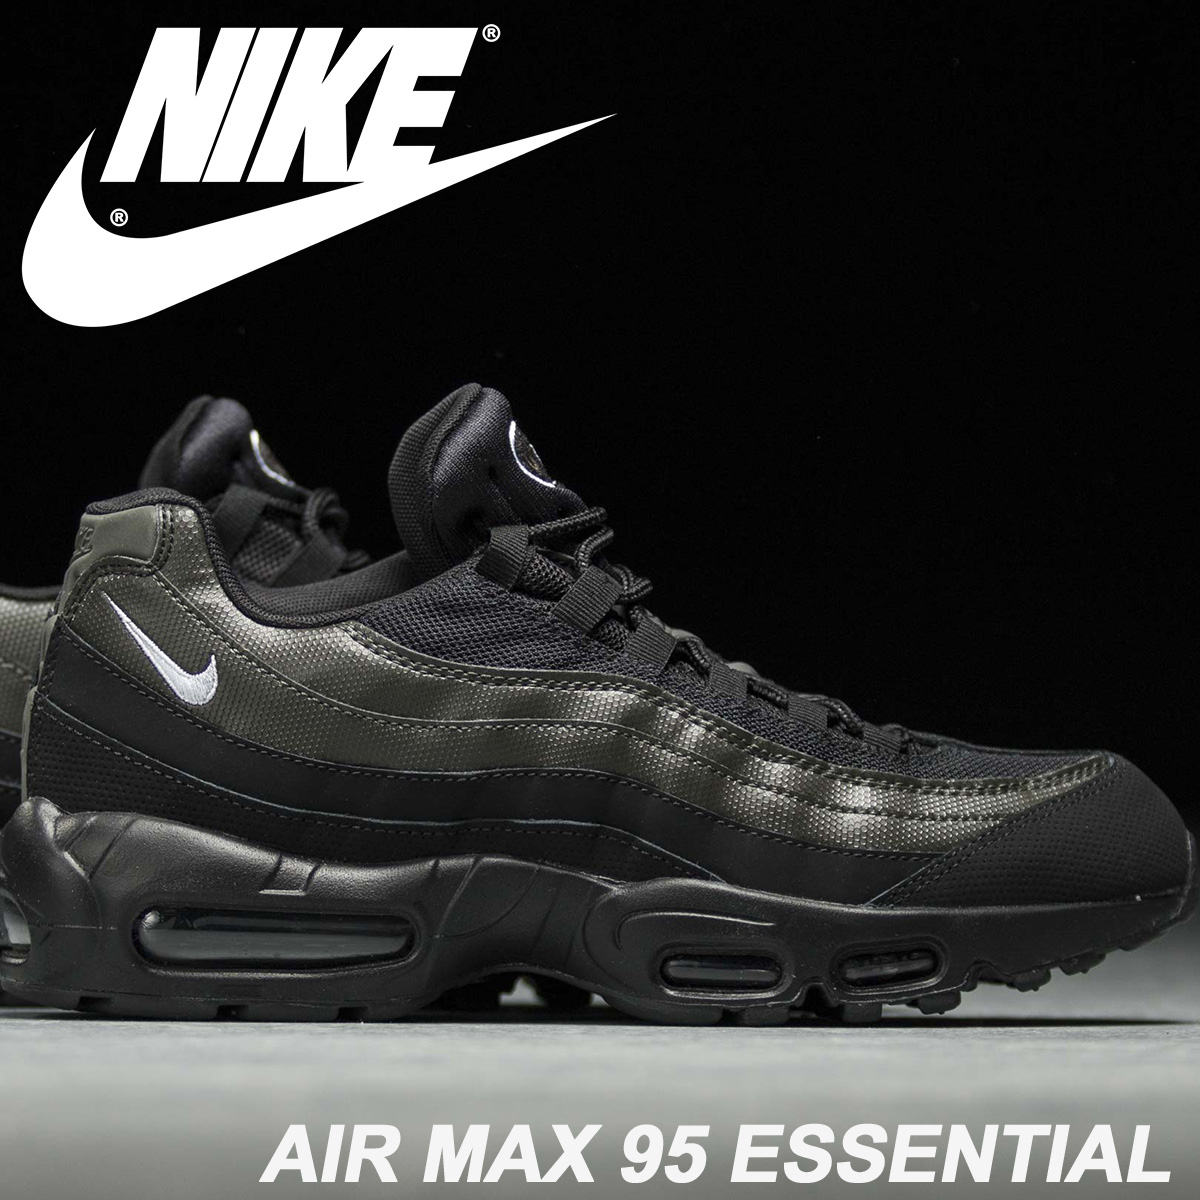 official photos 74bd2 af321 Nike NIKE Air Max 95 essential sneakers men AIR MAX 95 ESSENTIAL  7,497,664-034 black black [the 7/25 additional arrival]